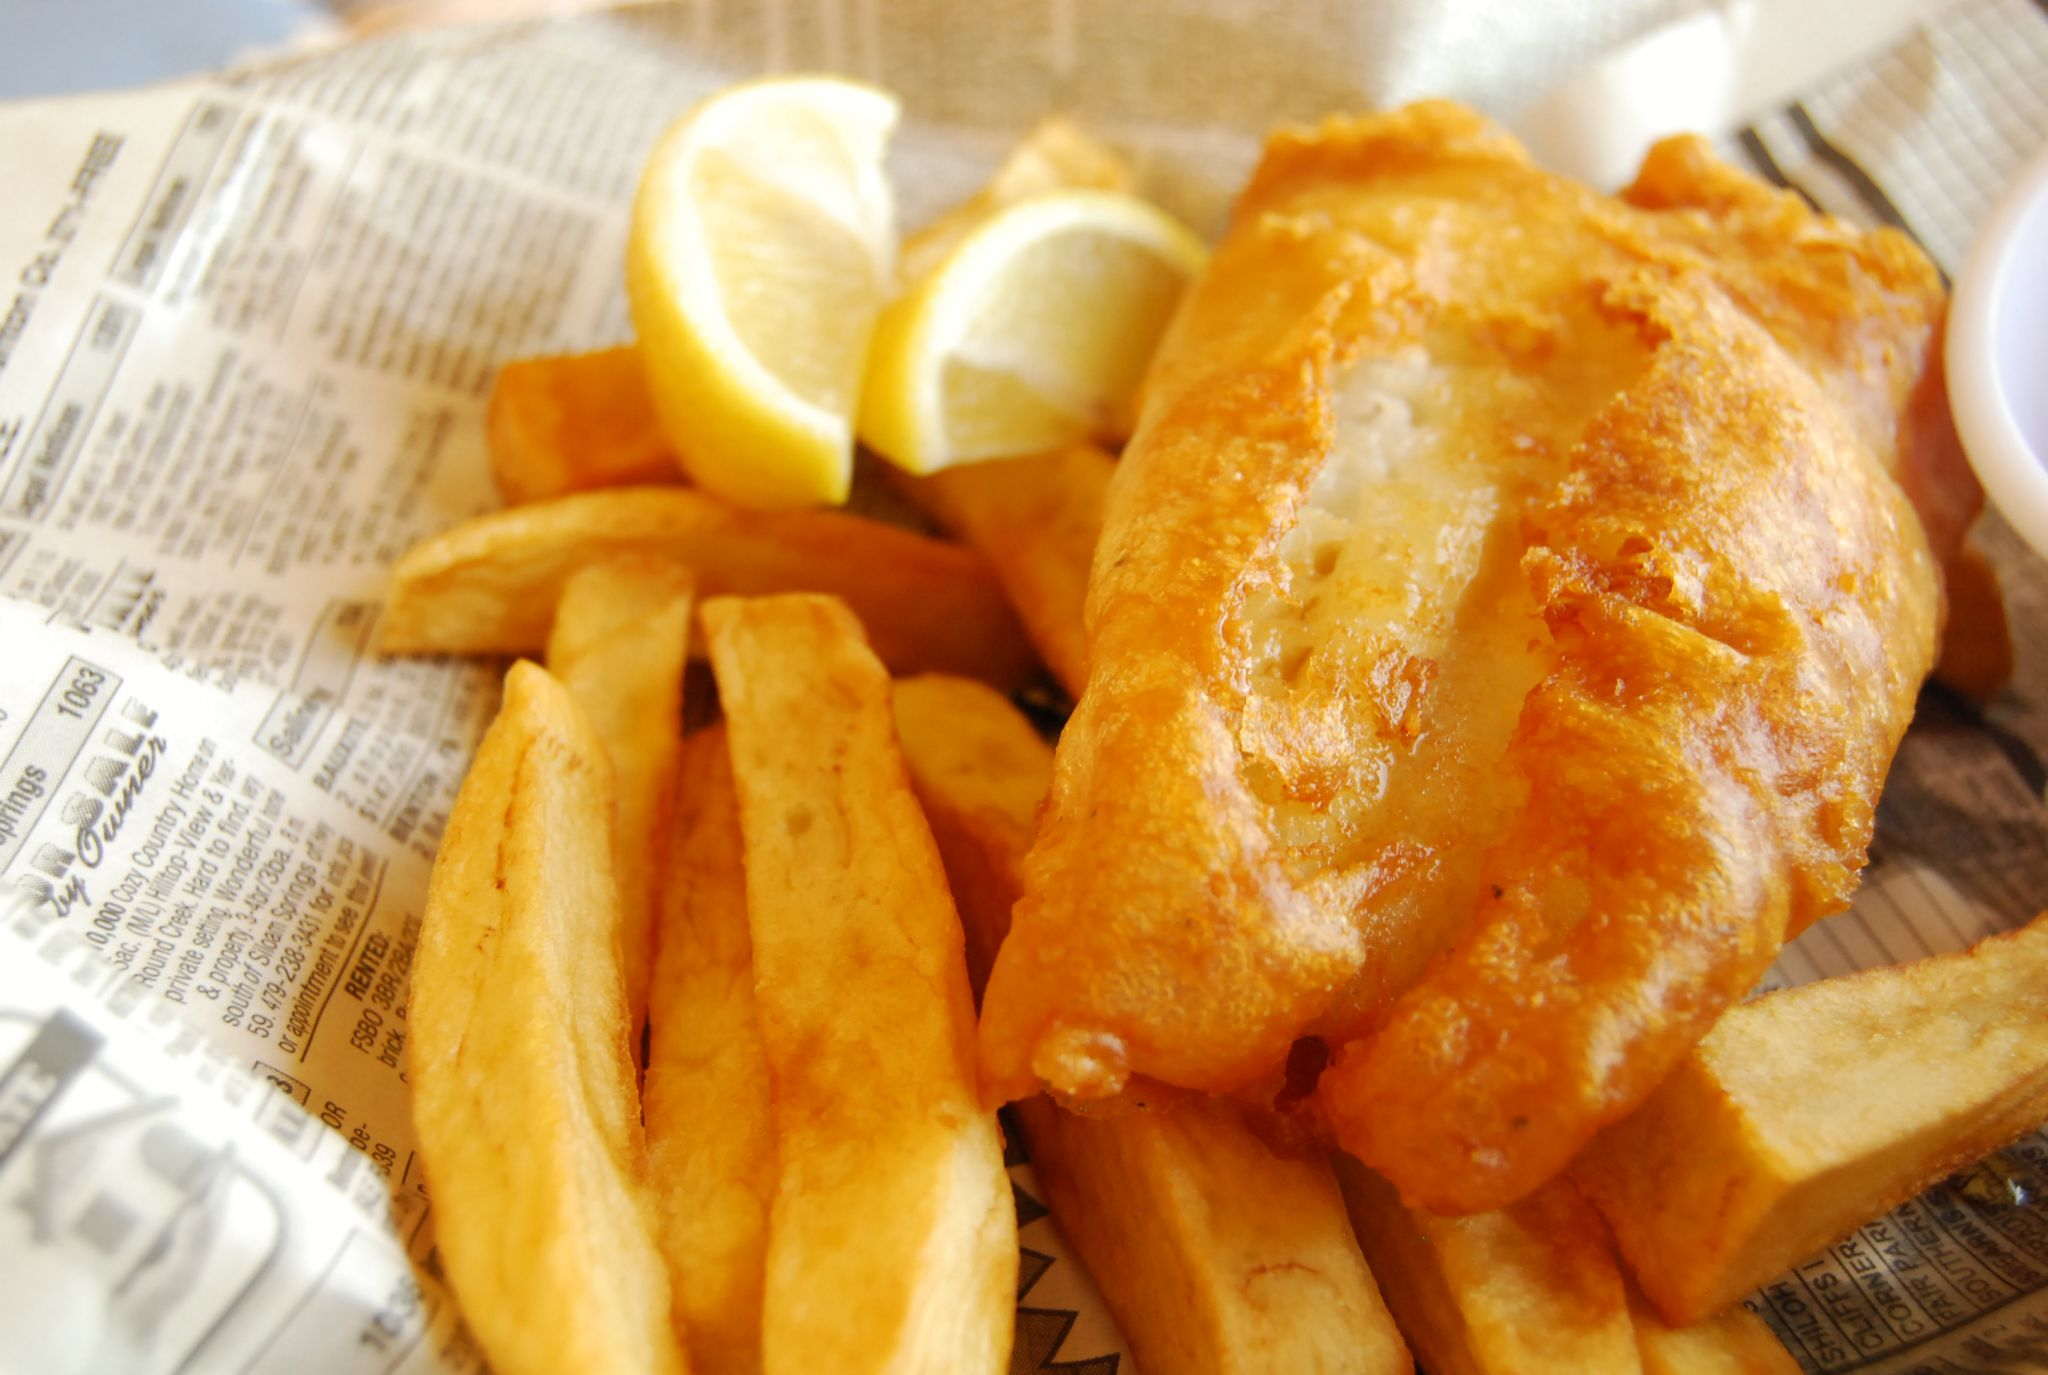 reduce food waste at home - fish and chips on newspaper